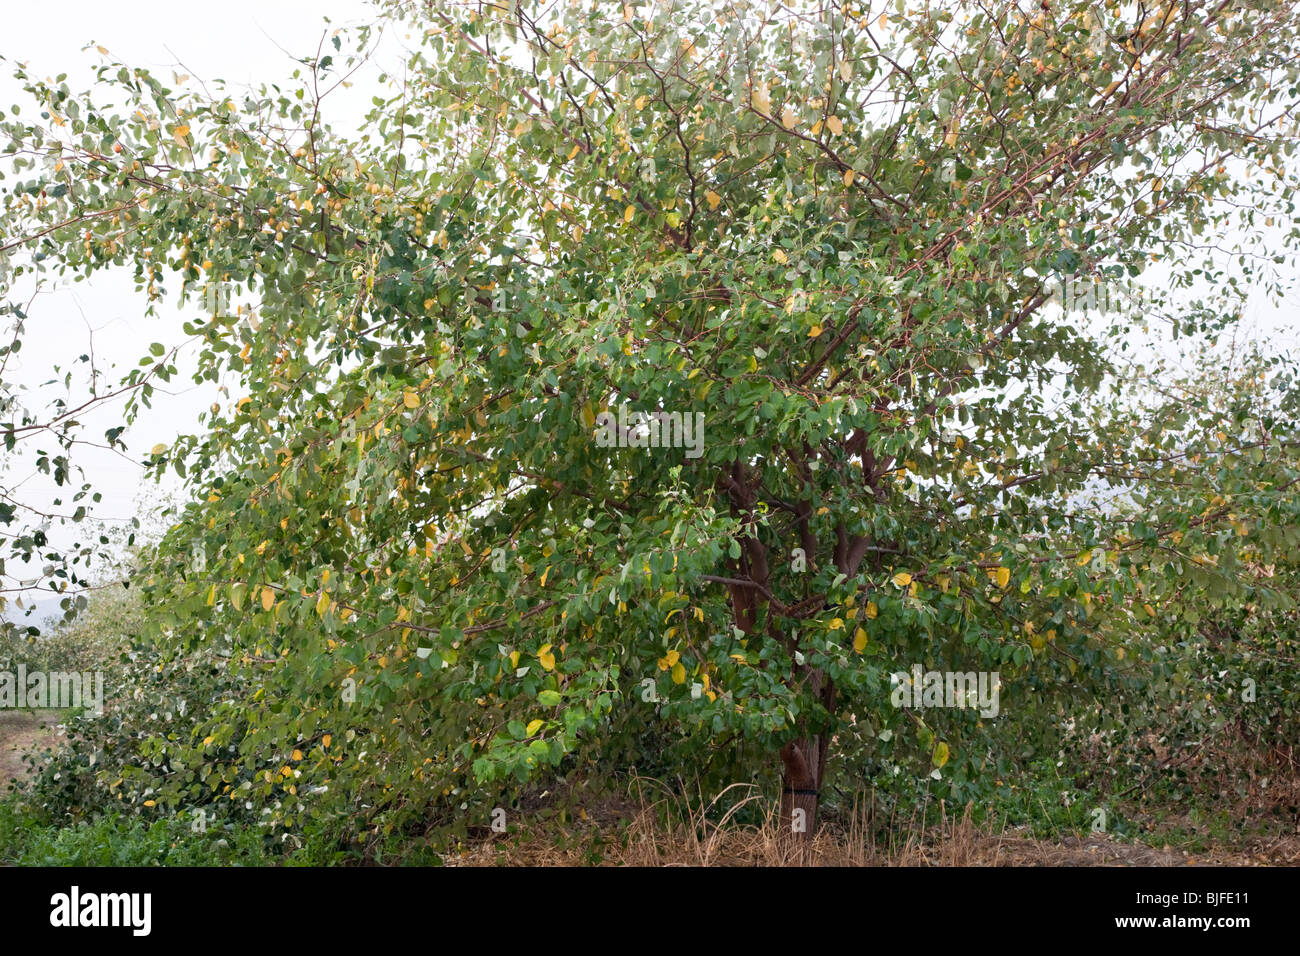 jujube ziziphus jujuba tree bearing fruit stock photo